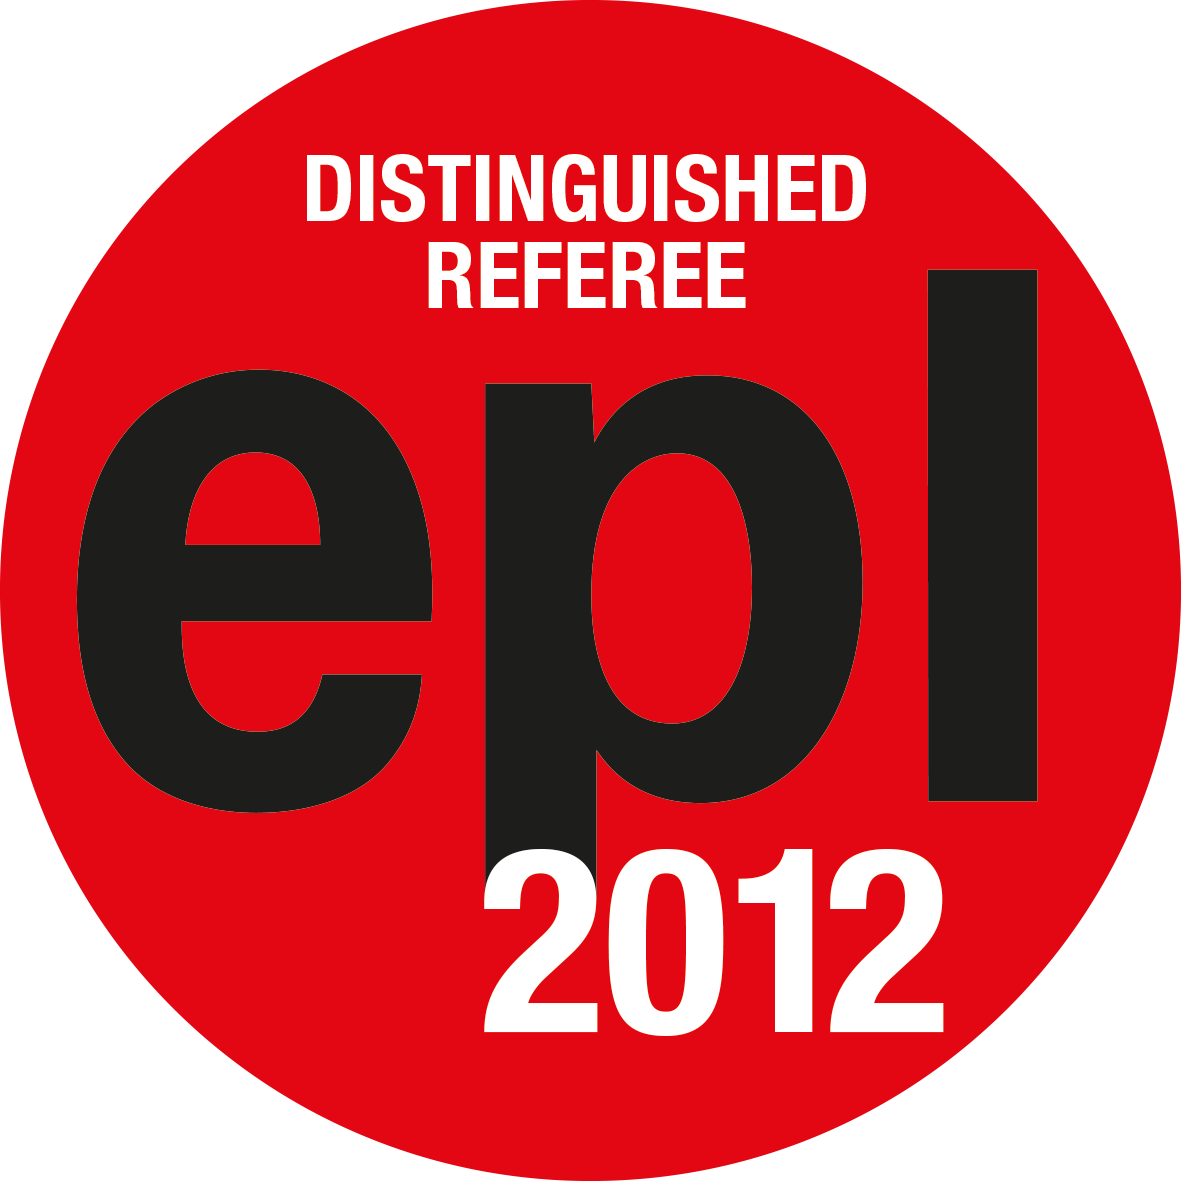 EPL Distinguished Referees 2012